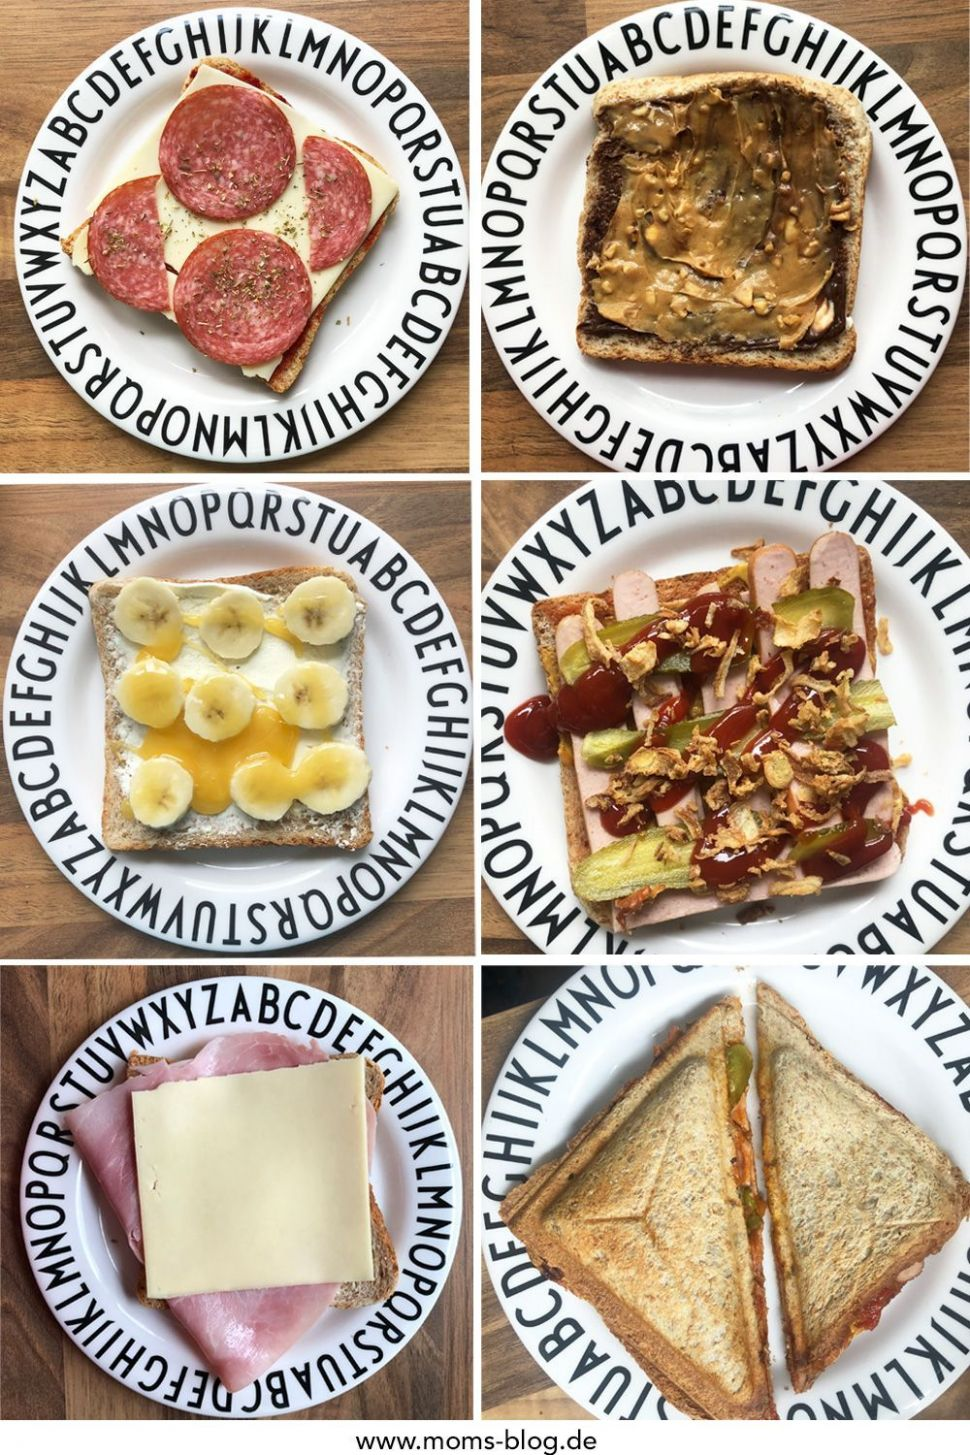 The 10 ♥ - sandwich maker recipes of my children ⋆ Moms Blog, the ..